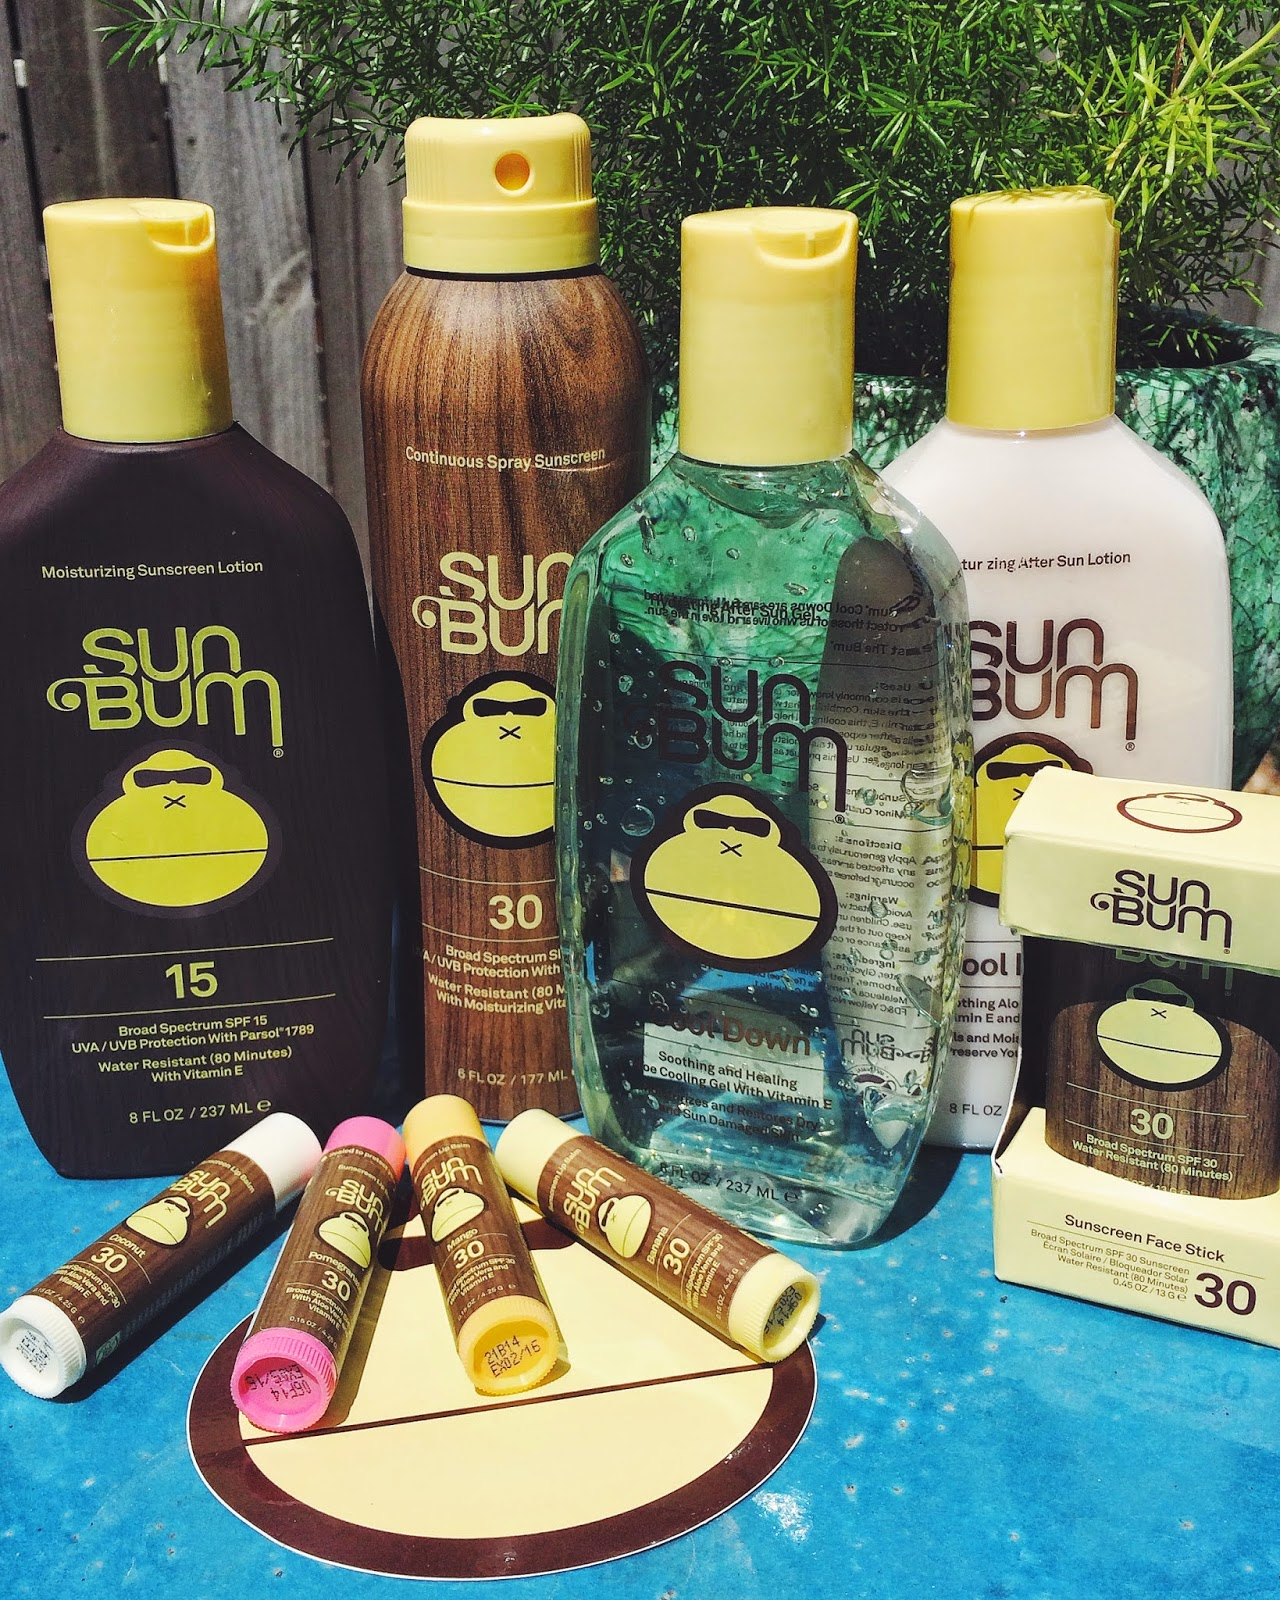 SunBum, Sun Bum Sun Screen, Sun Bum Sunscreen, Trust the Bum